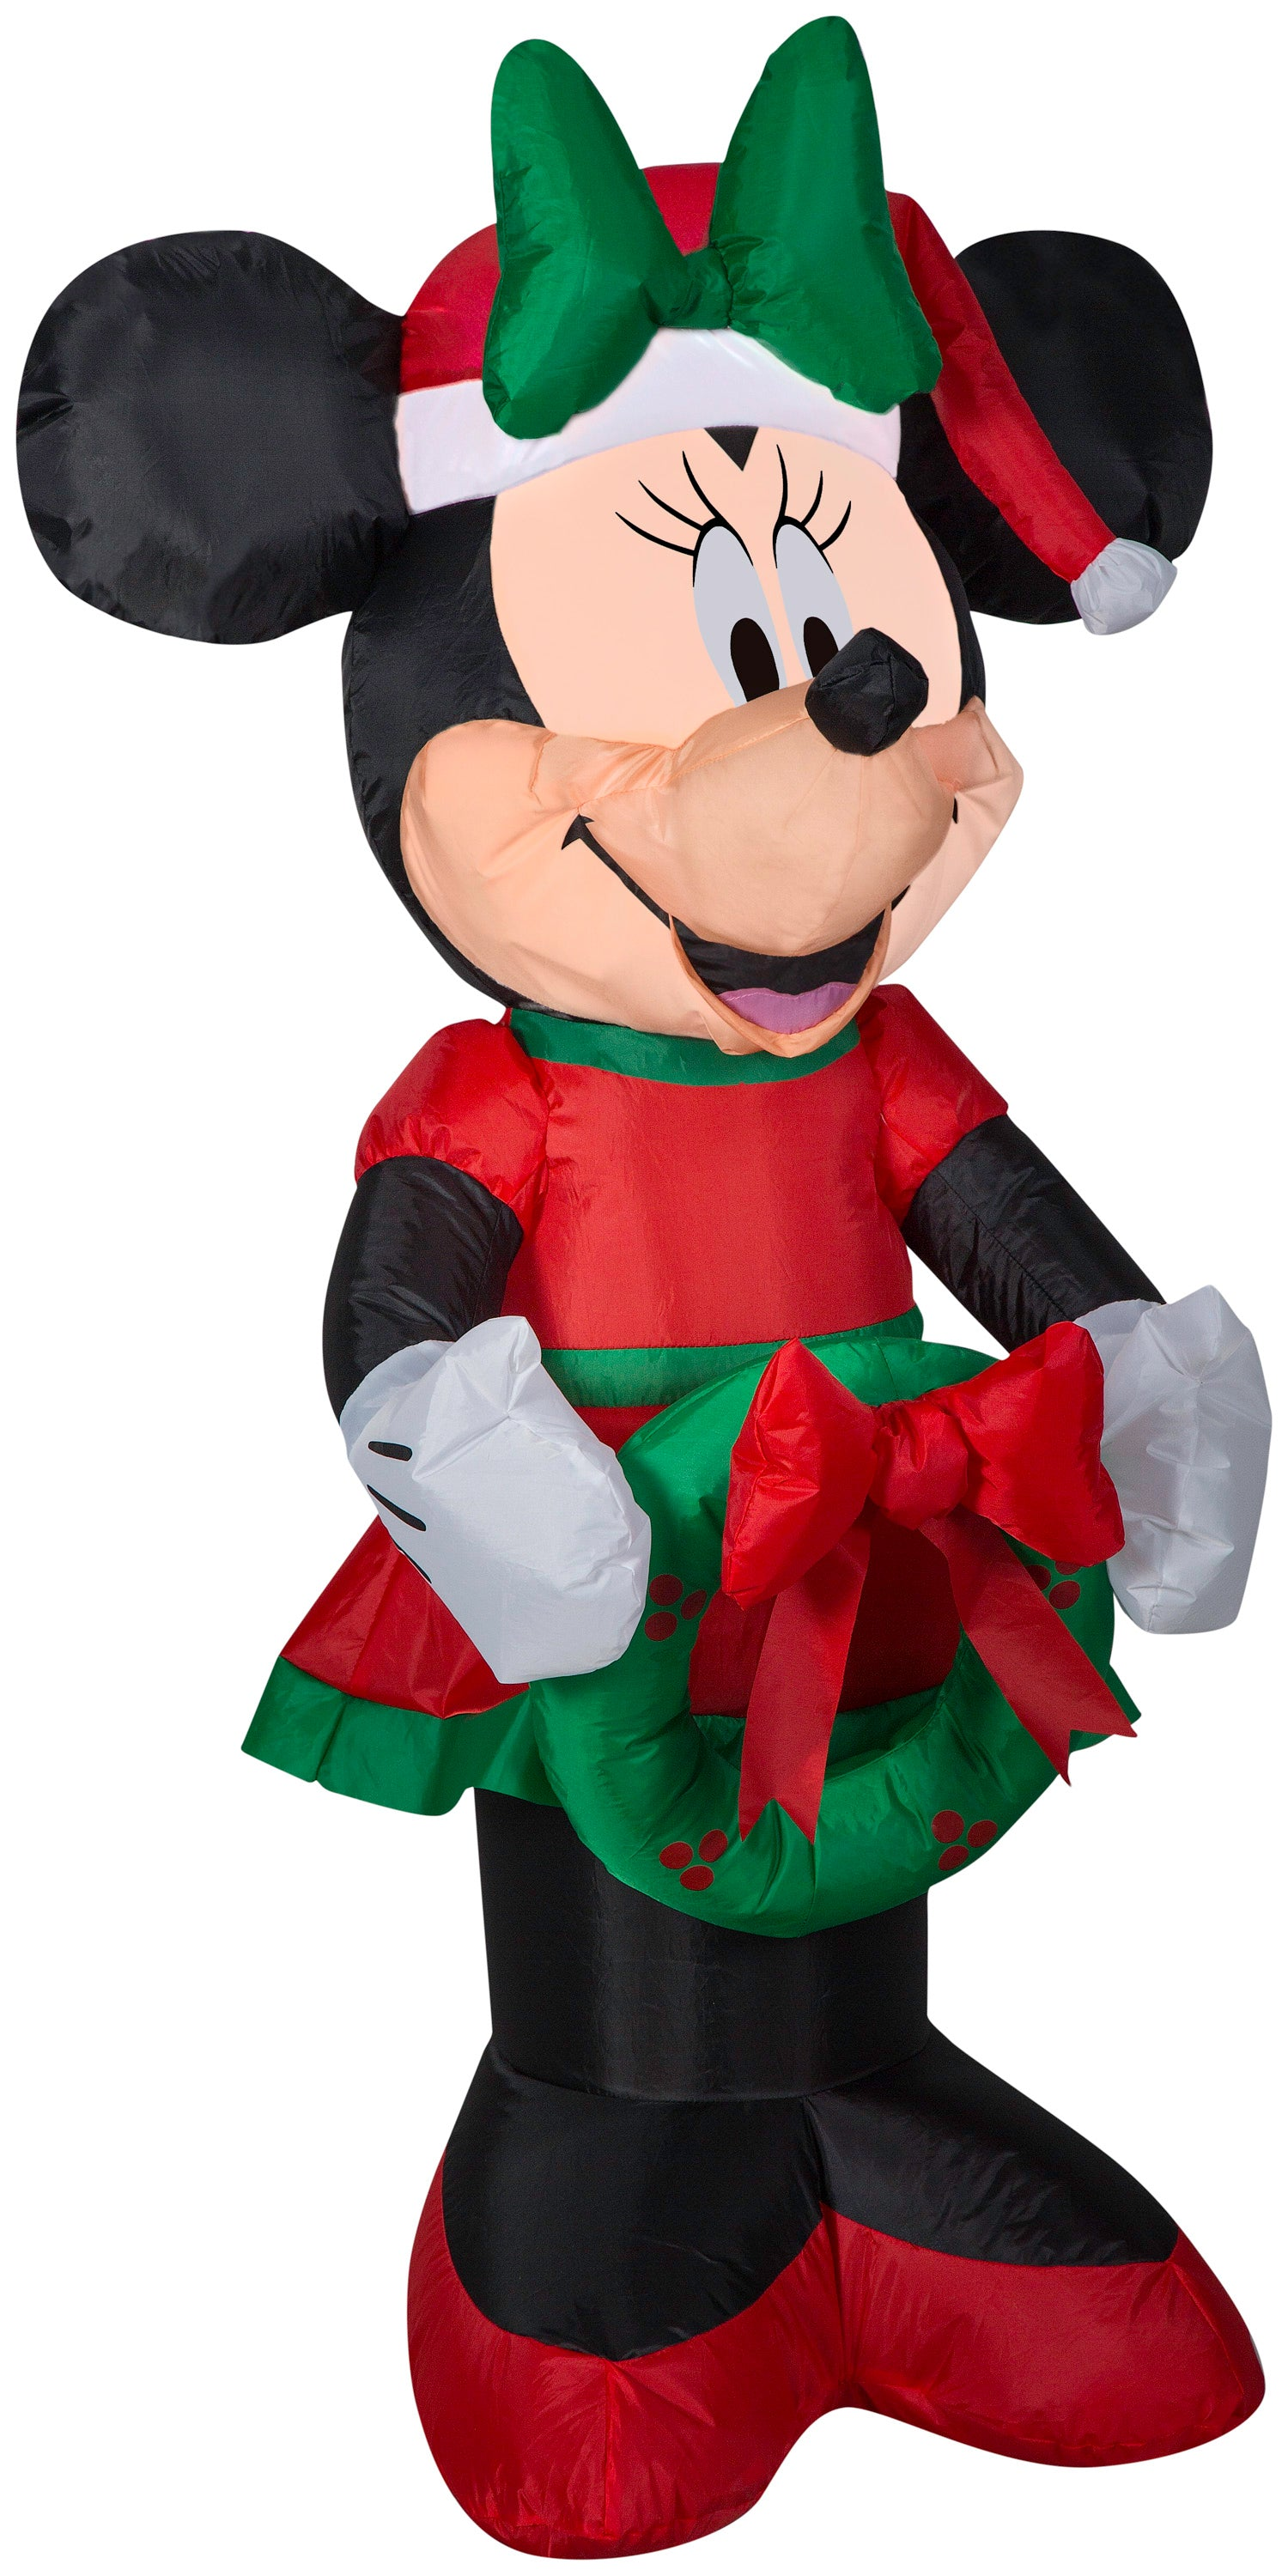 3.5' Airblown Minnie w/ Green Bow Disney Christmas Inflatable